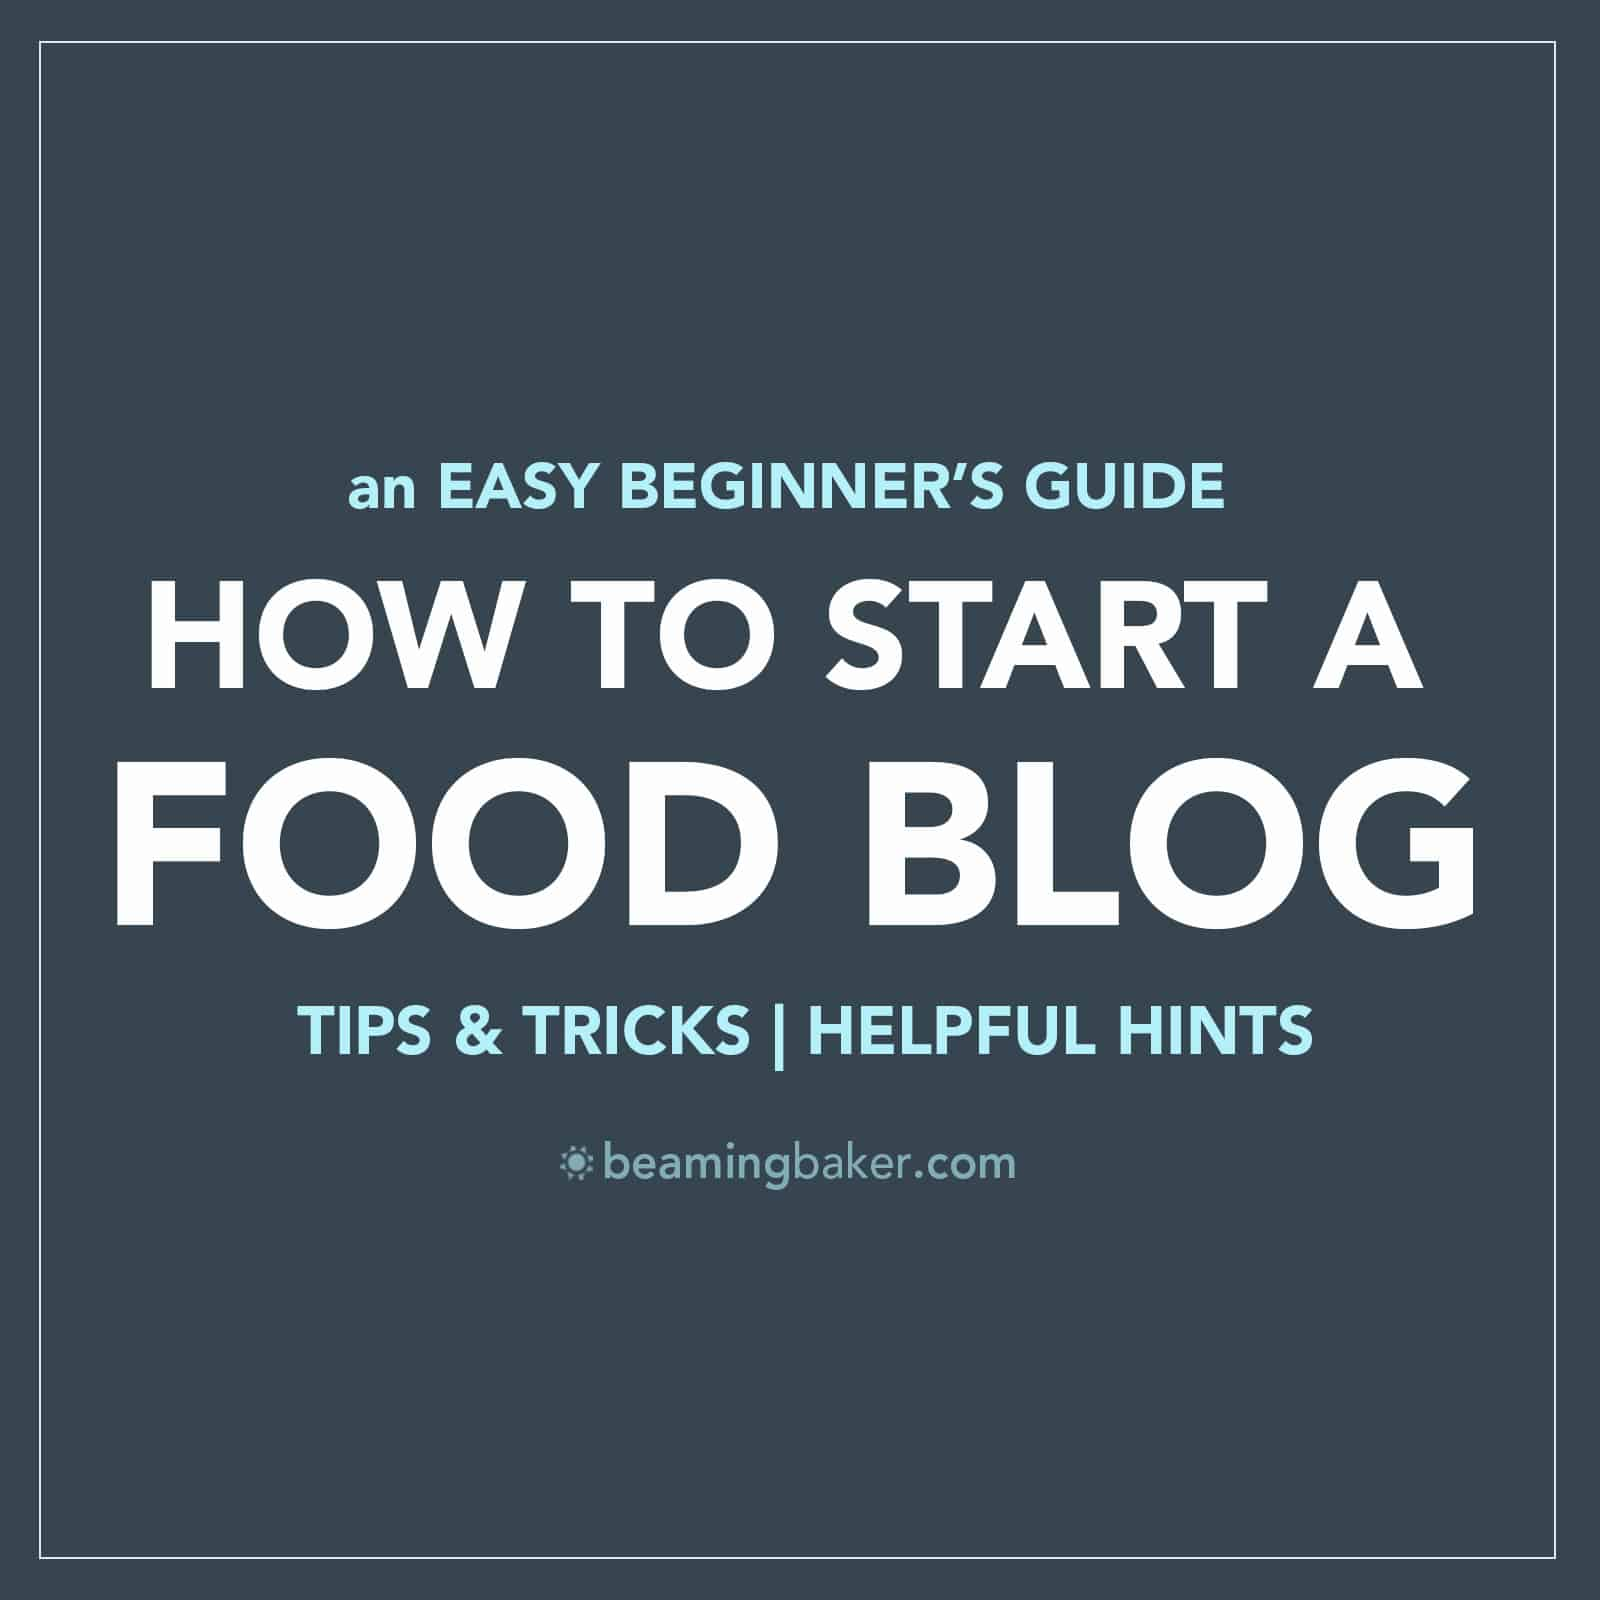 How to Start a Food Blog: an Easy Beginner's Guide: a step-by-step tutorial shows you how to start a food blog and a few basics and tips to get going! #Howto #FoodBlog #Blogging | BeamingBaker.com